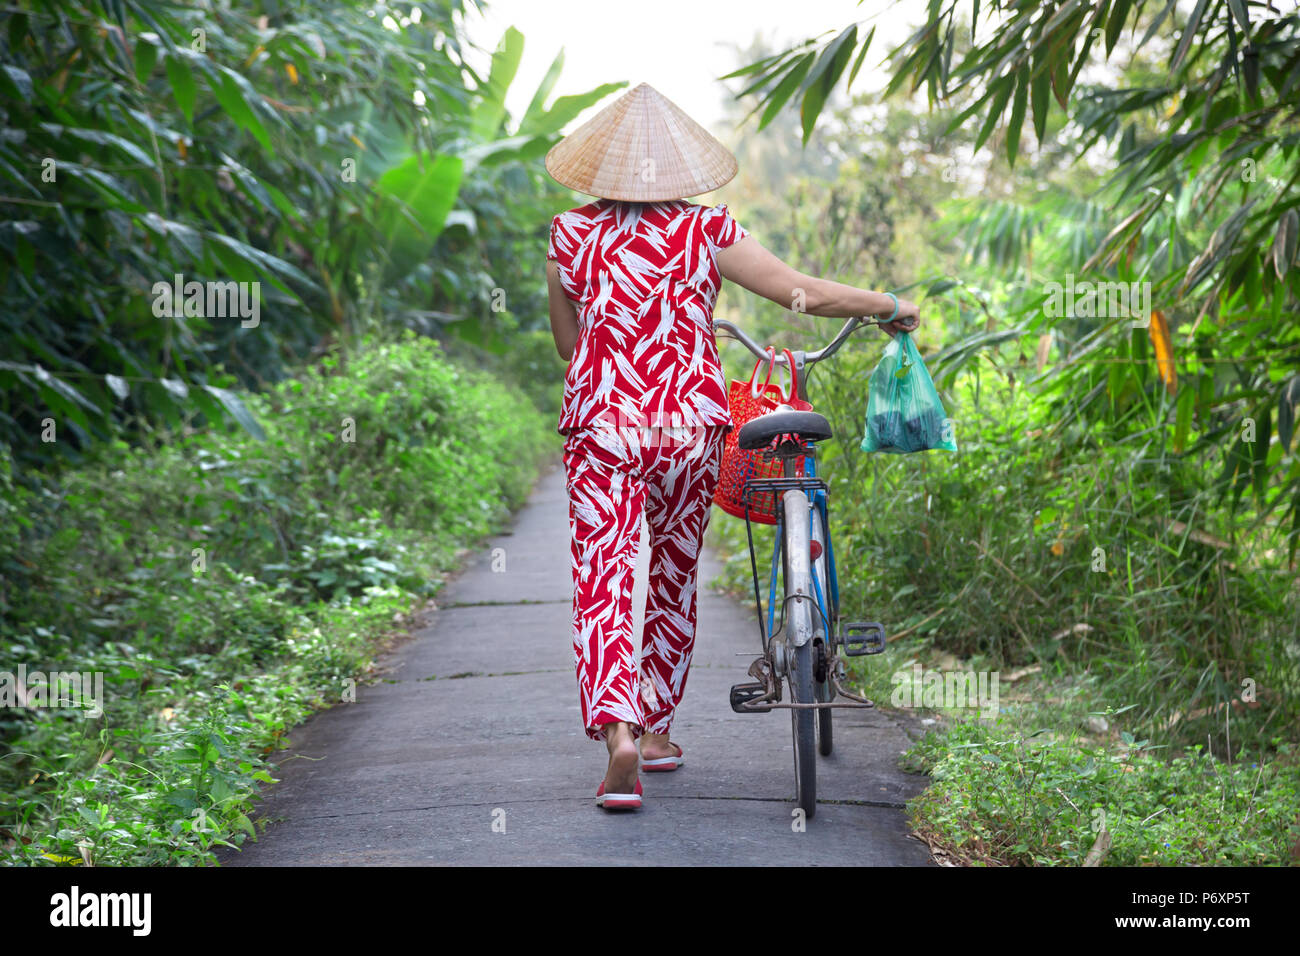 Woman with bicycle and conical hat on An Binh island , Vietnam - Stock Image